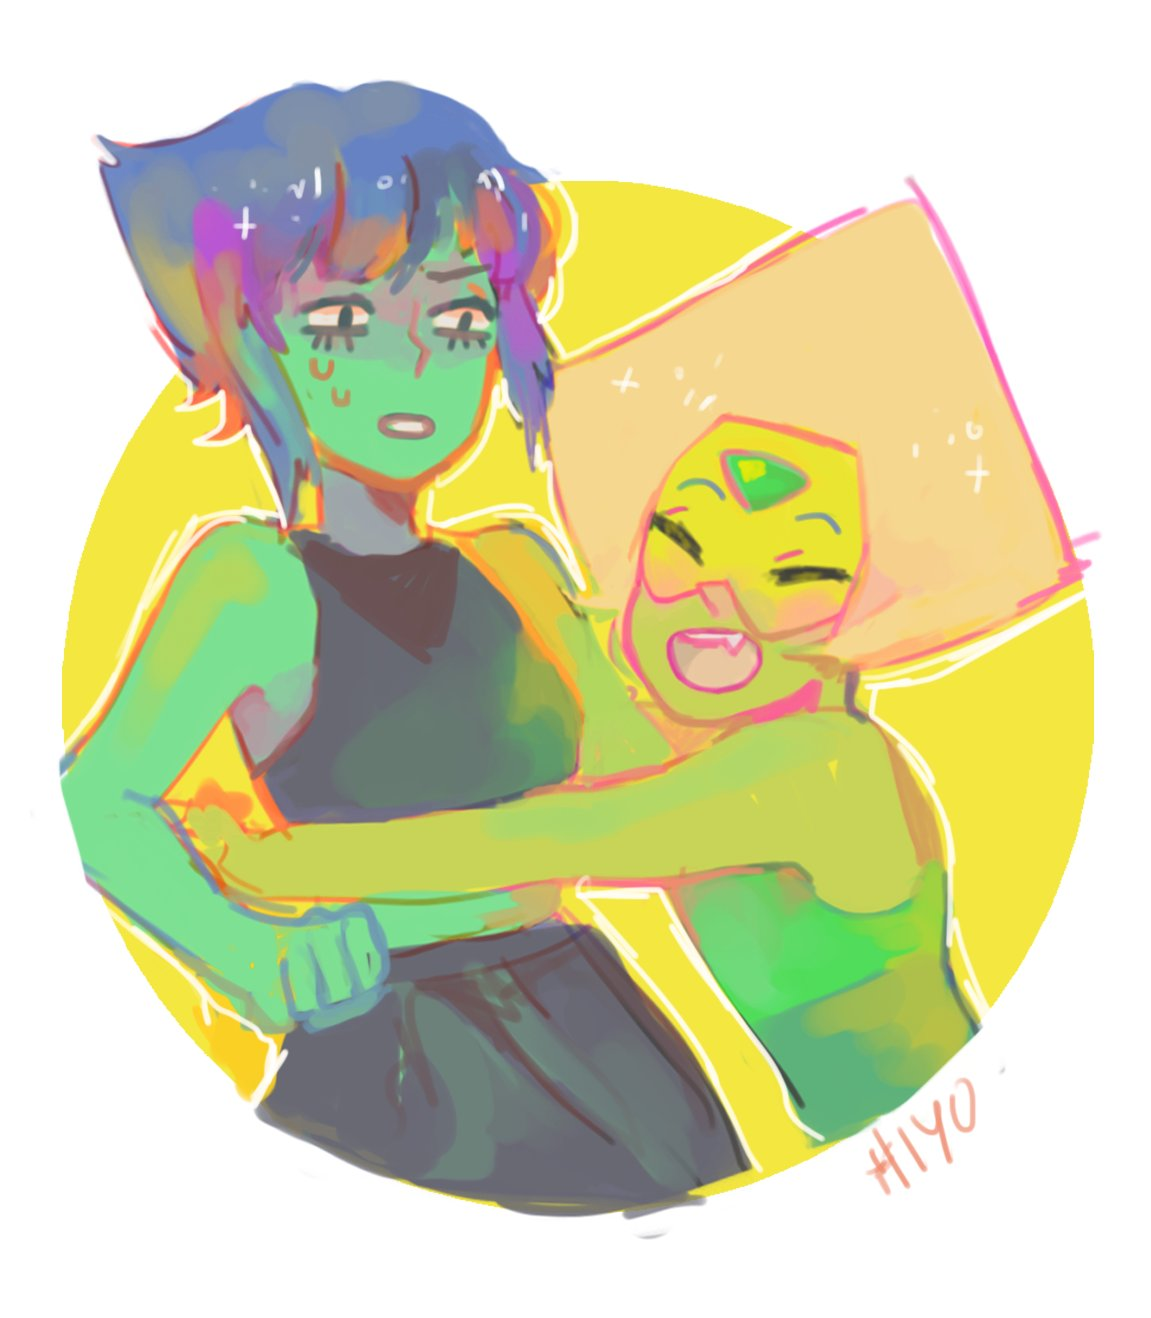 """lapis and her small gf (green friend)"""